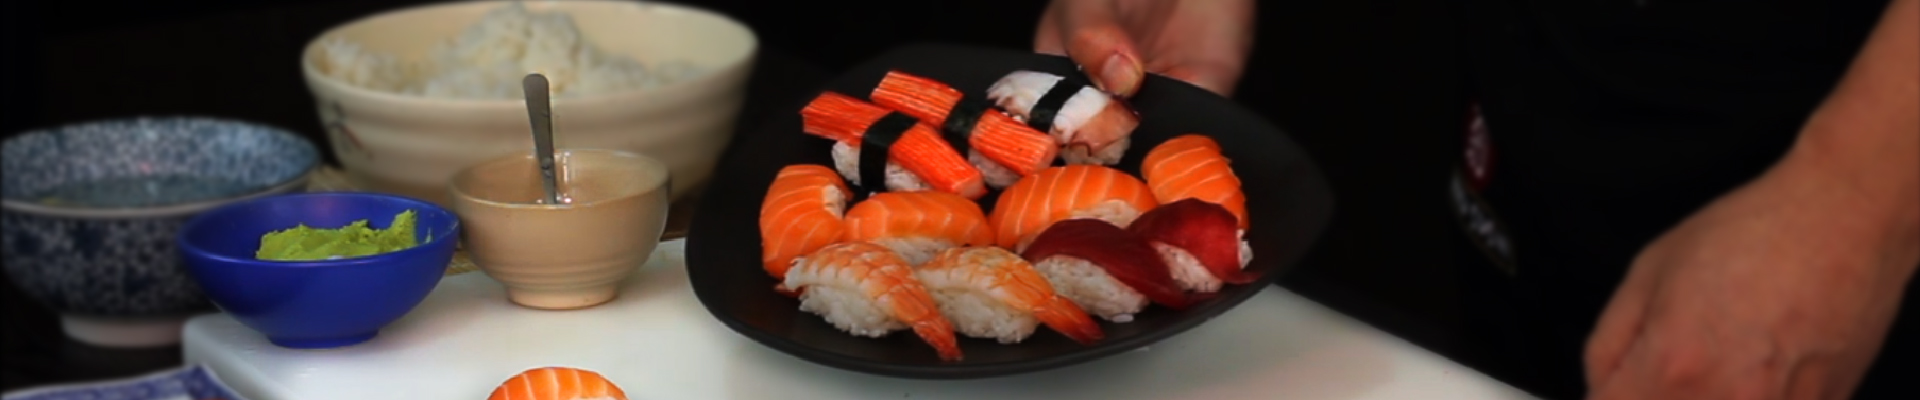 Sushi Ulrich Laven Lehrfilm video how to series 2011